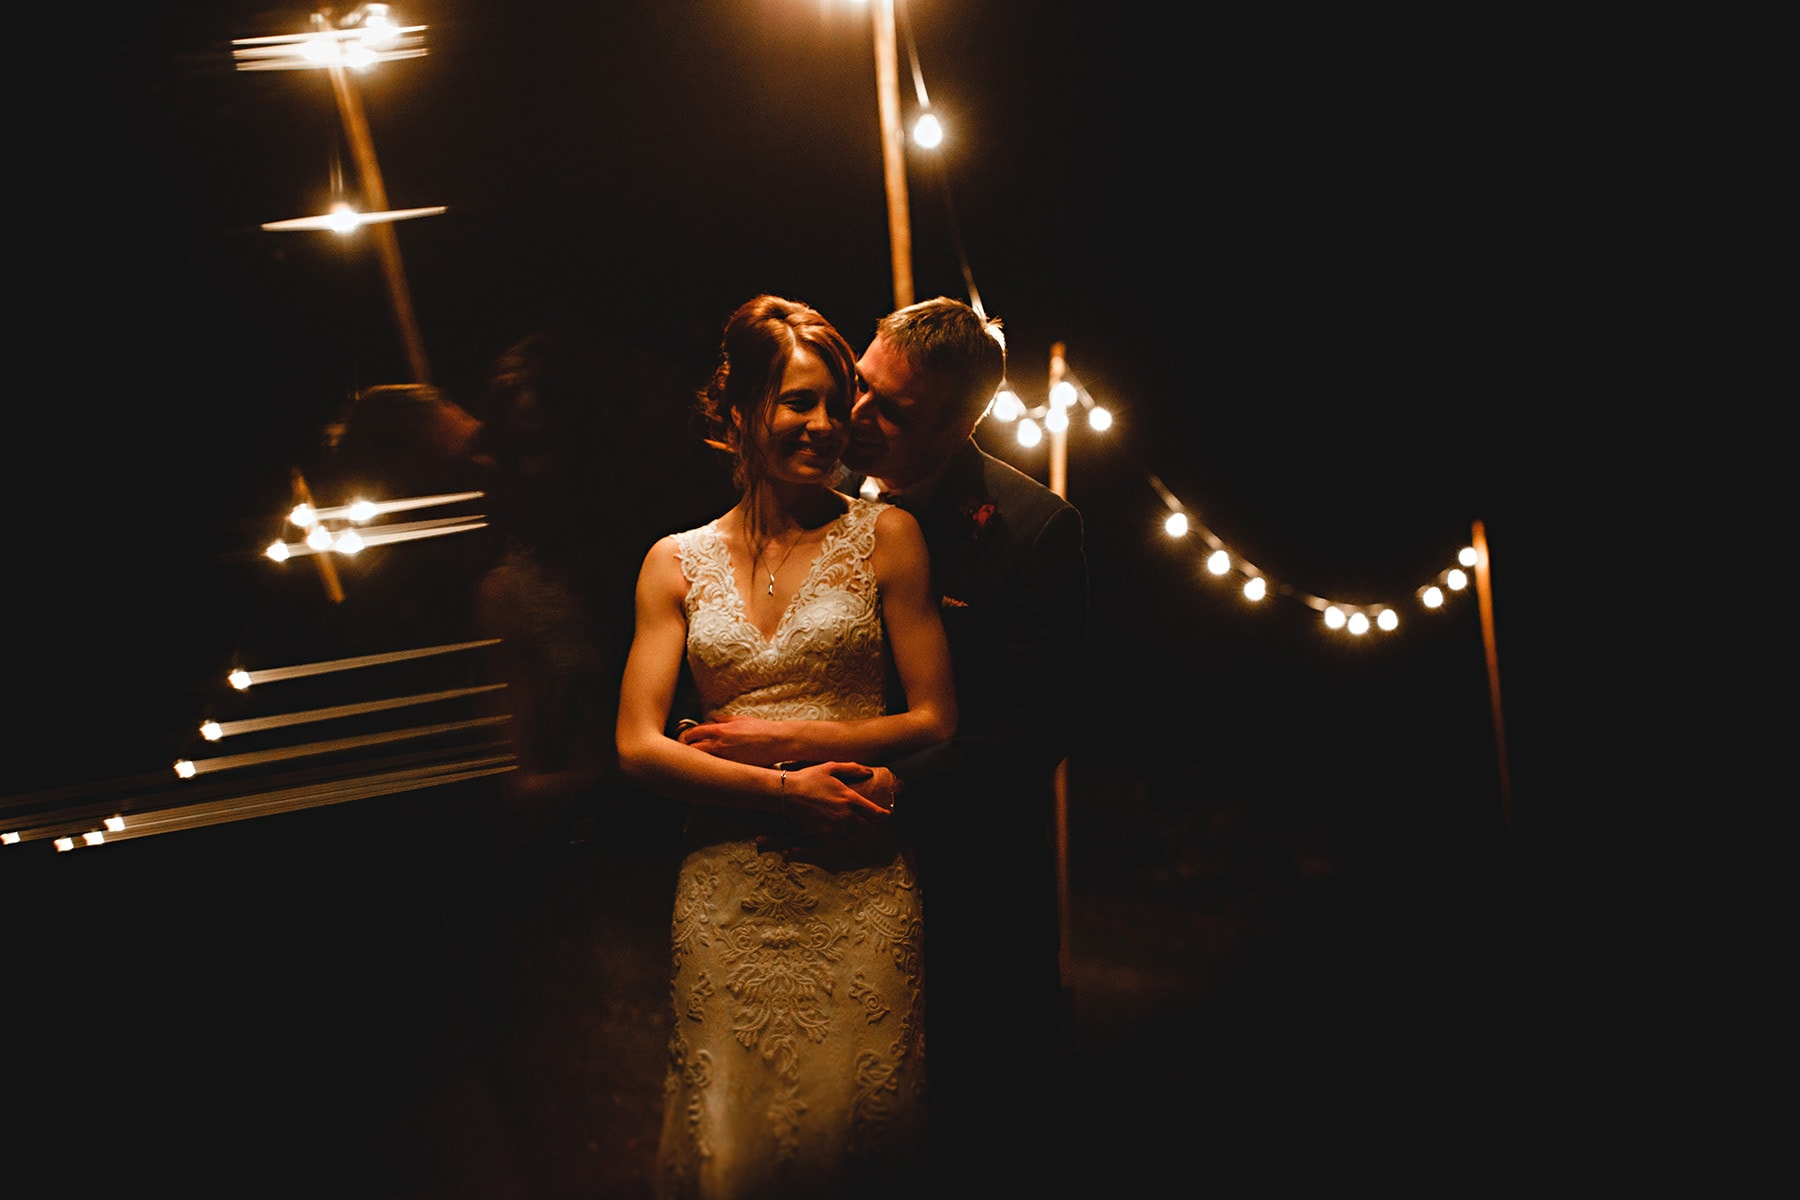 the bride and groom together at The Lingholme Estate under the festoon lights